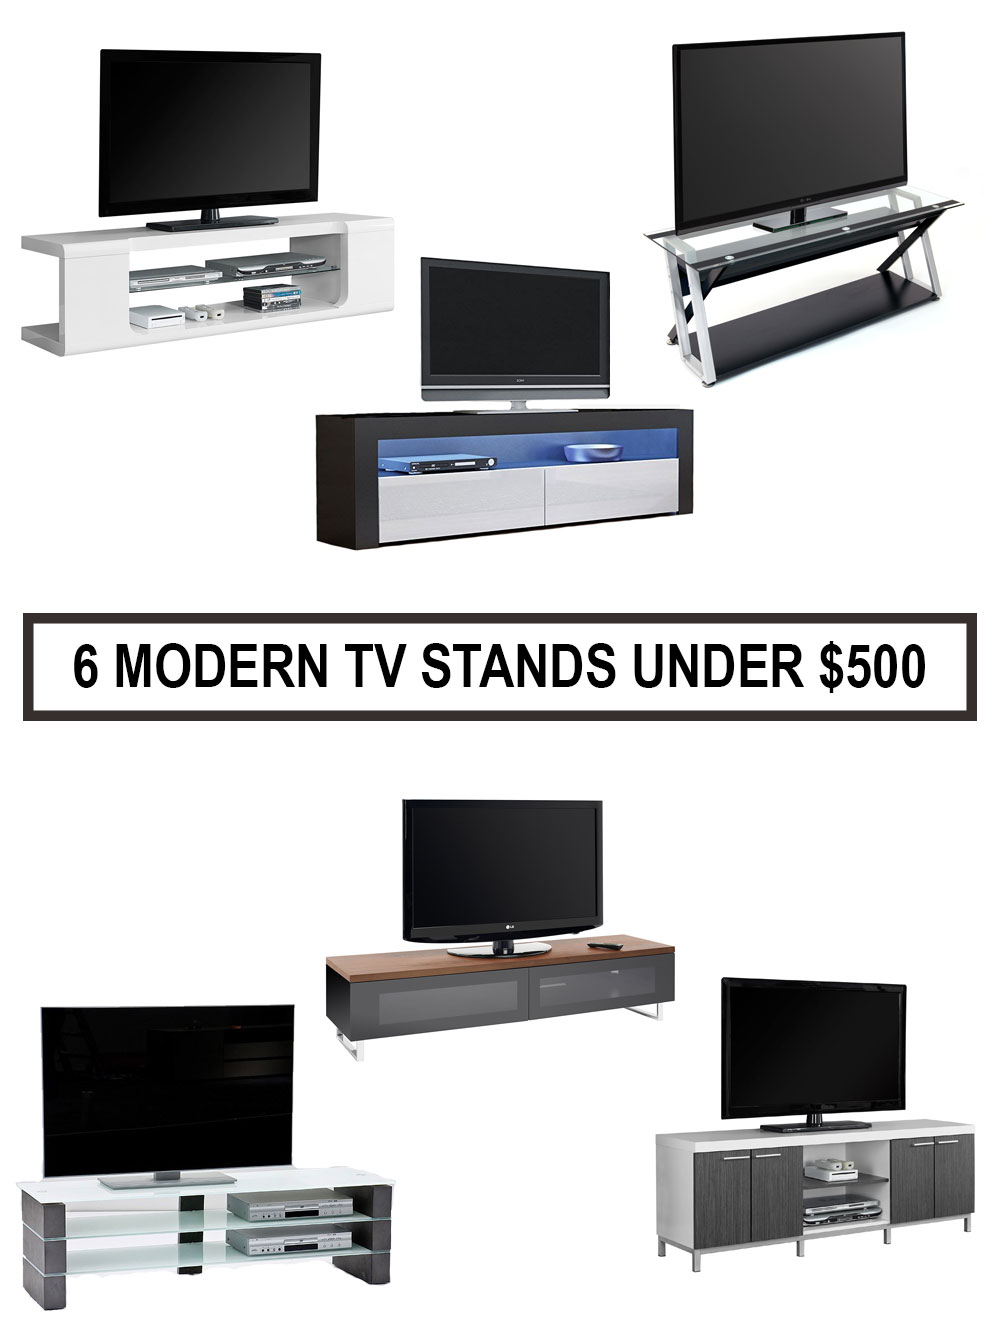 Best Modern TV Stands Under $500 | Minimalist Home Furniture For Less